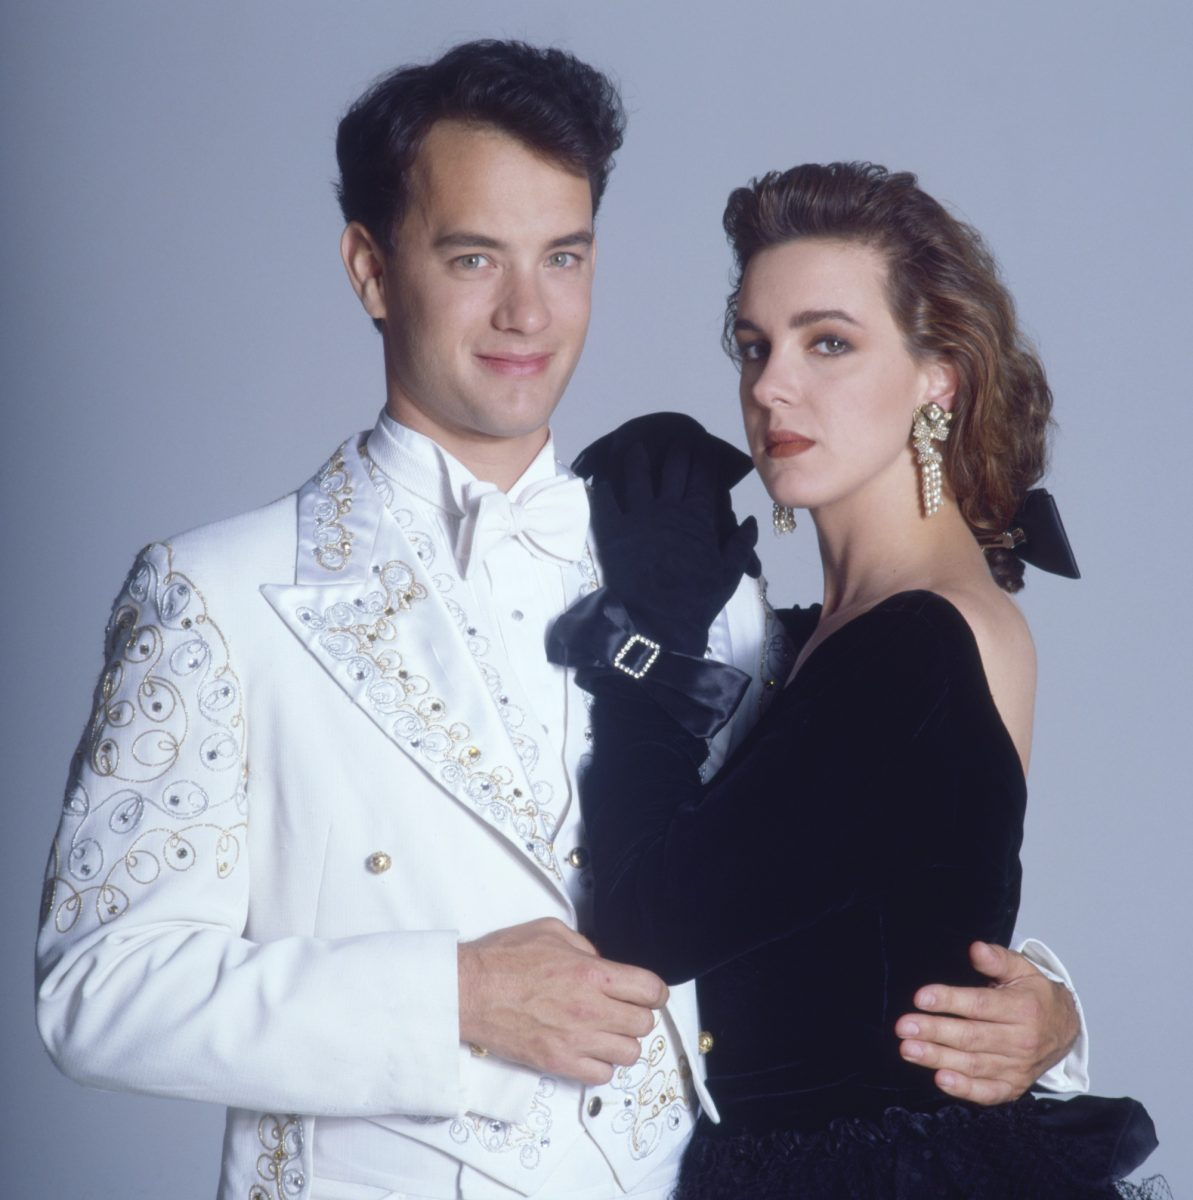 Tom Hanks and Elizabeth Perkins in Big